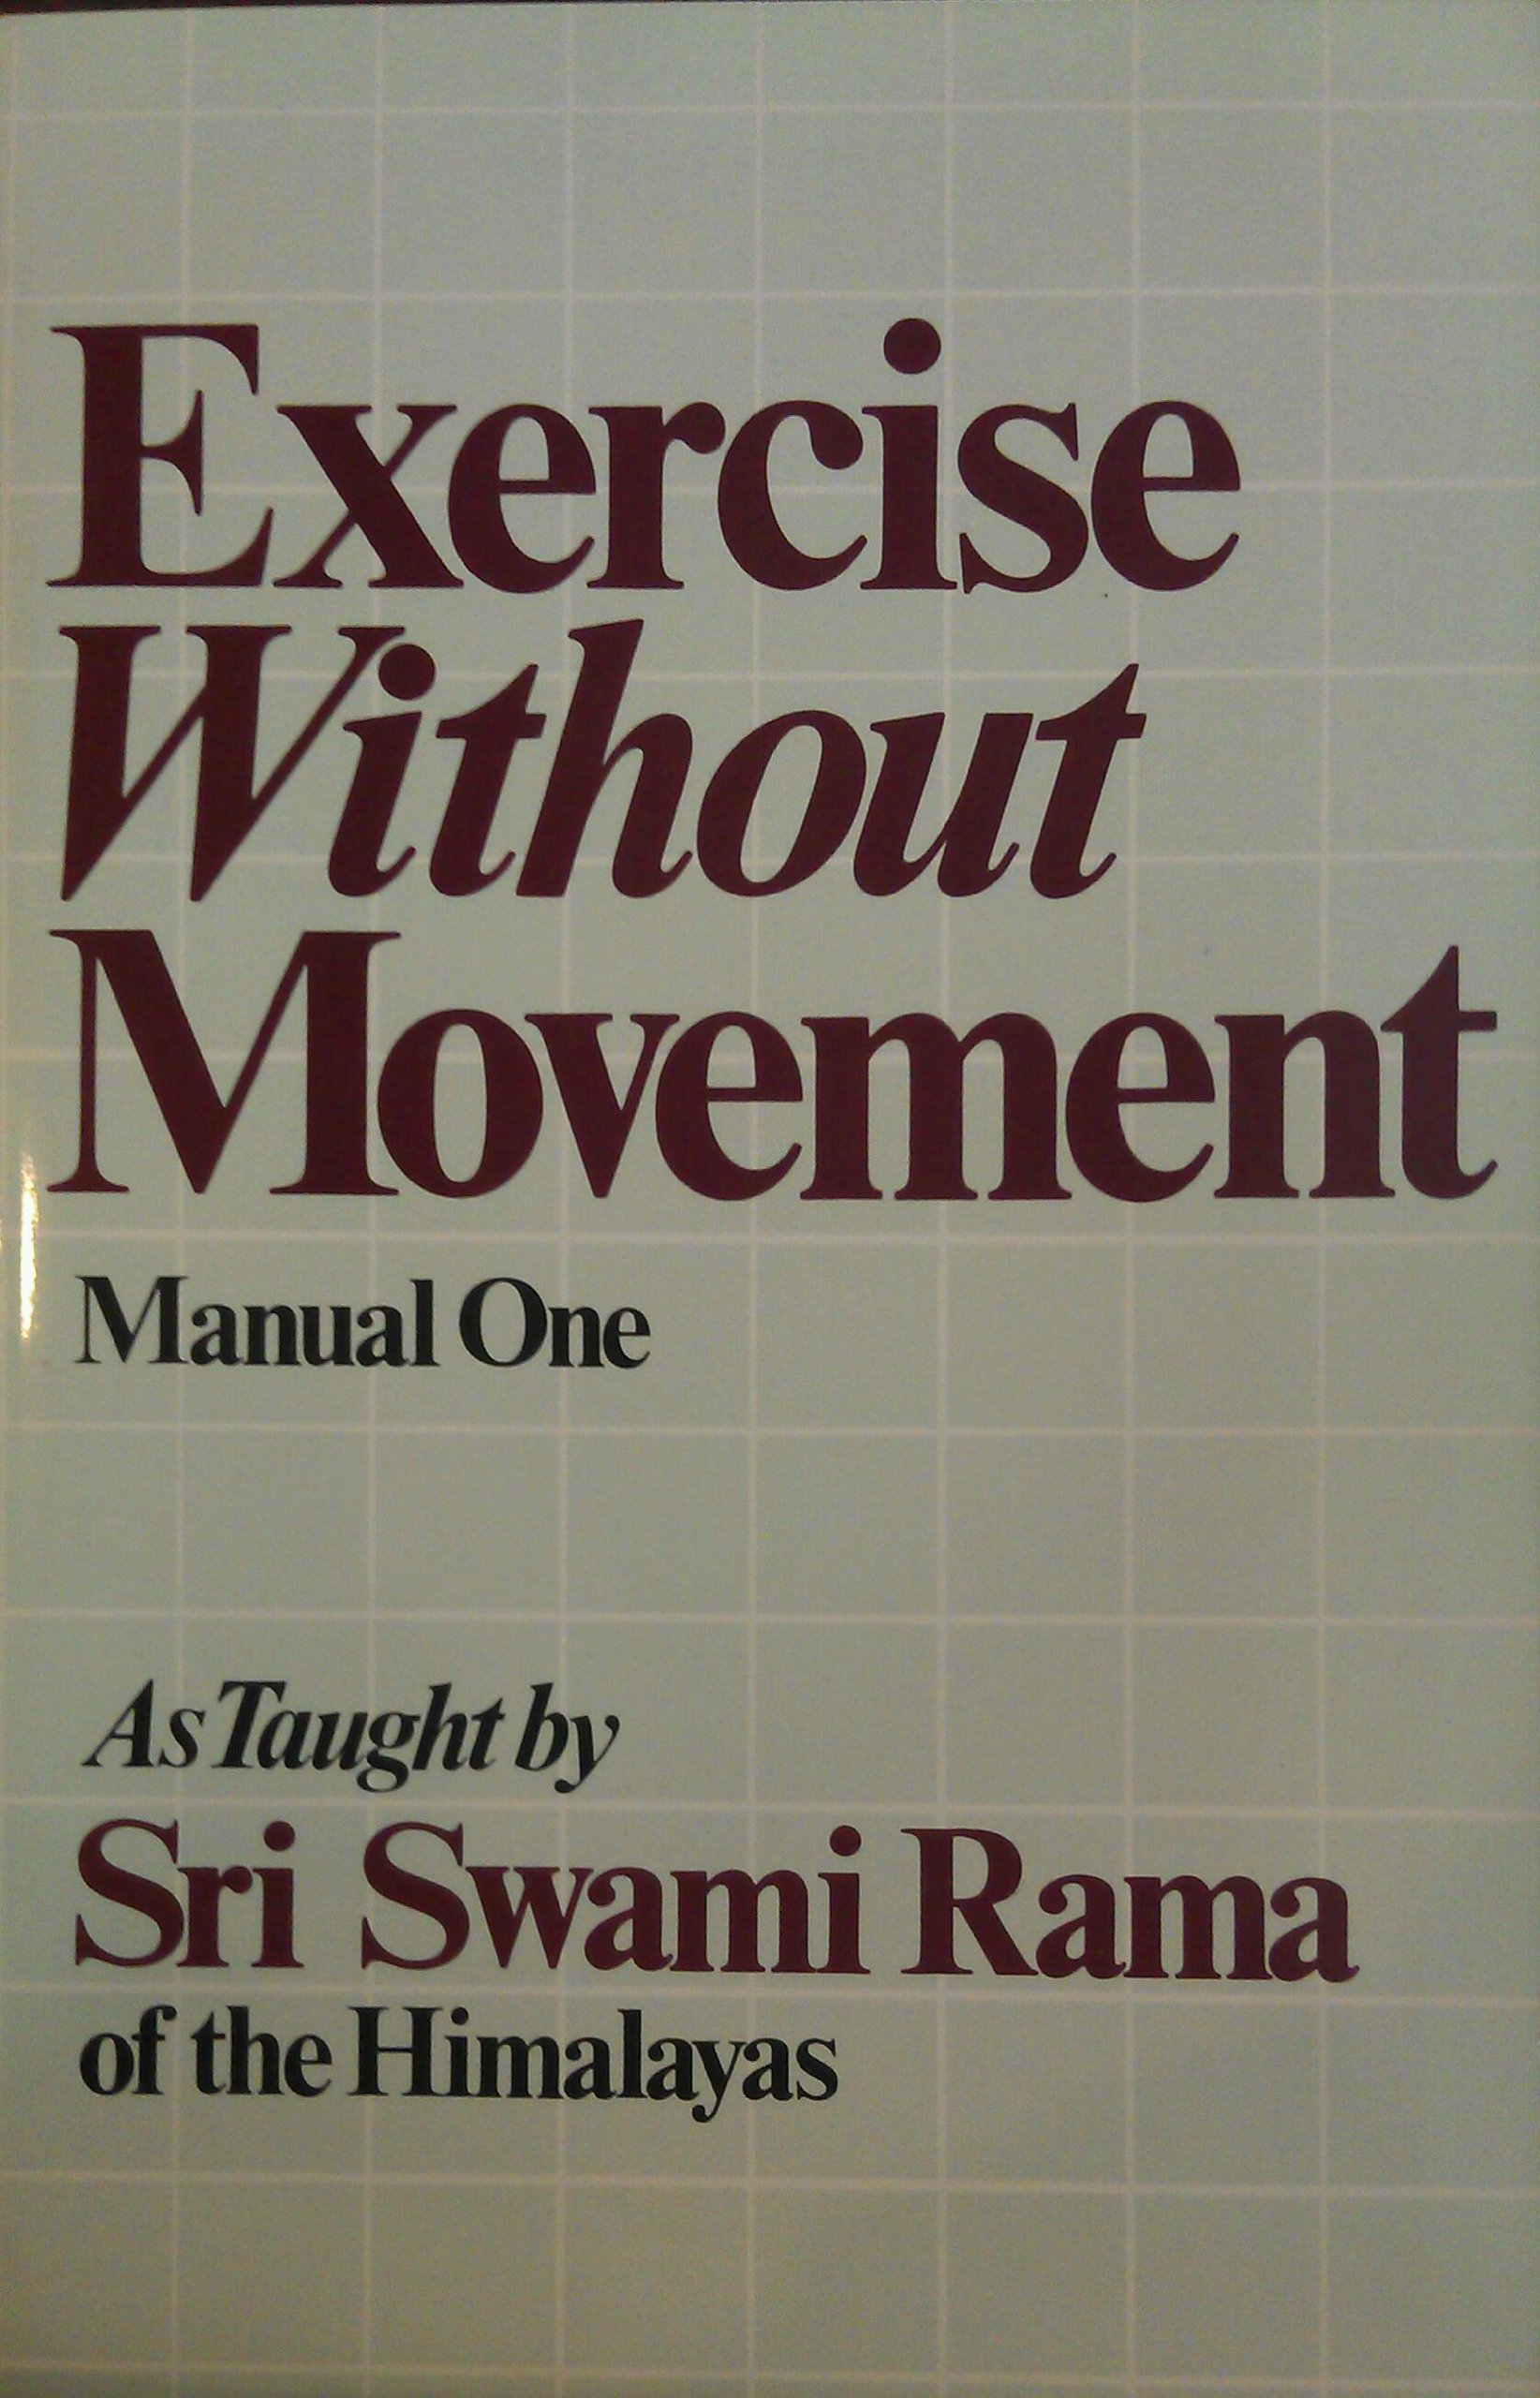 Exercise Without Movement: As Taught by Swami Rama (Manual, No 1): Swami  Rama: 9780893890896: Amazon.com: Books